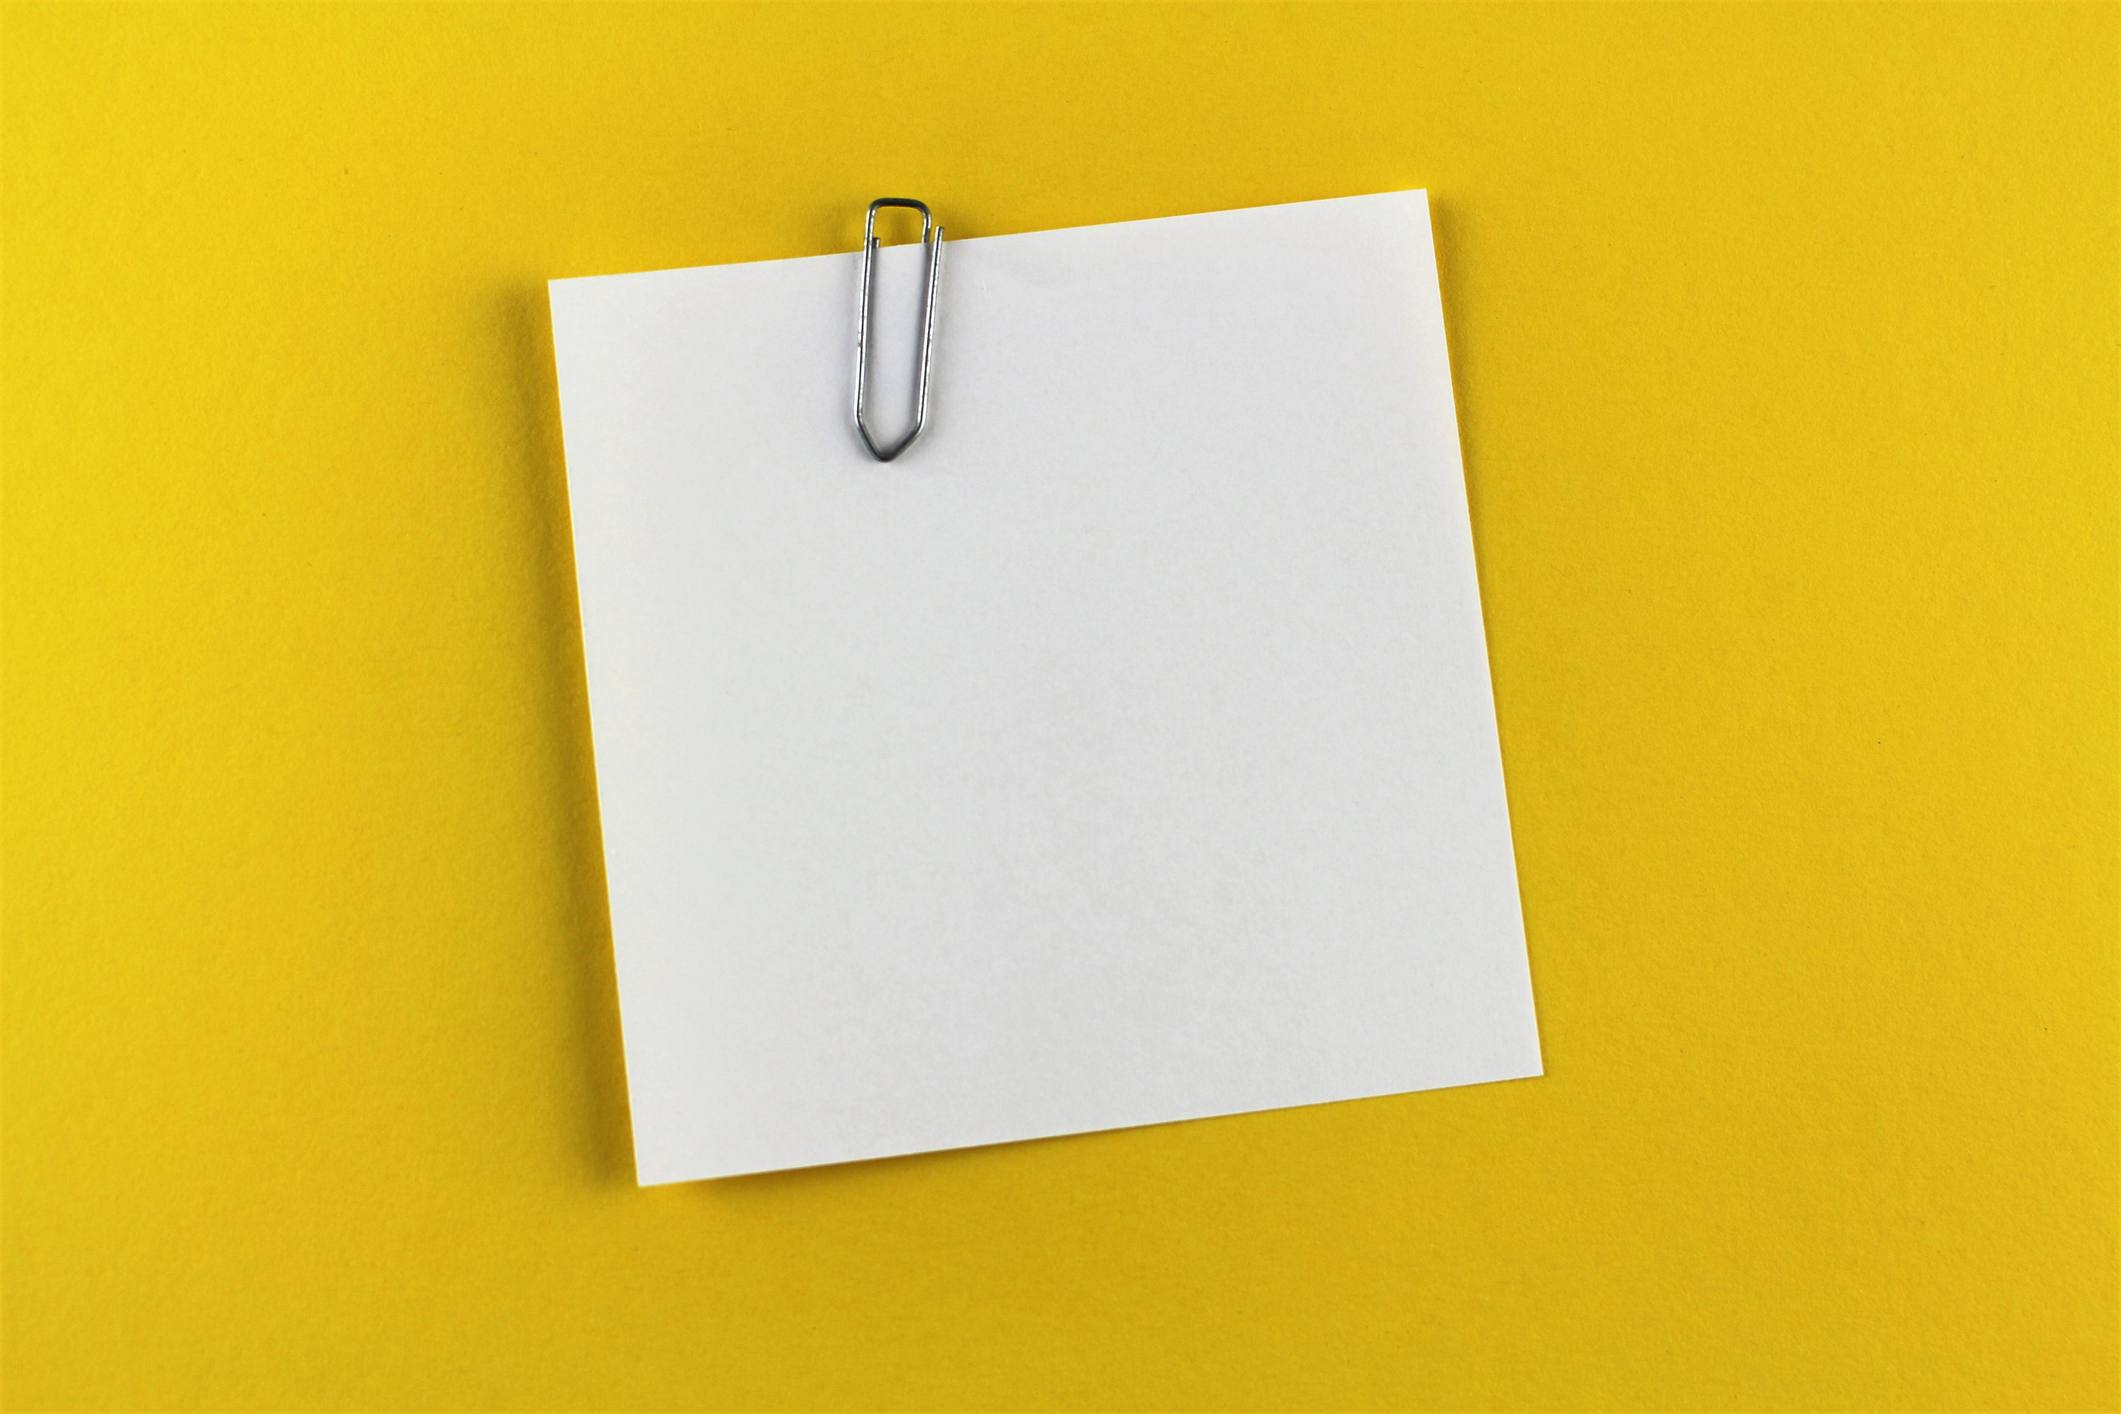 Close-Up Of Empty Paper Hanging On Yellow Background with Paperclip Attachment